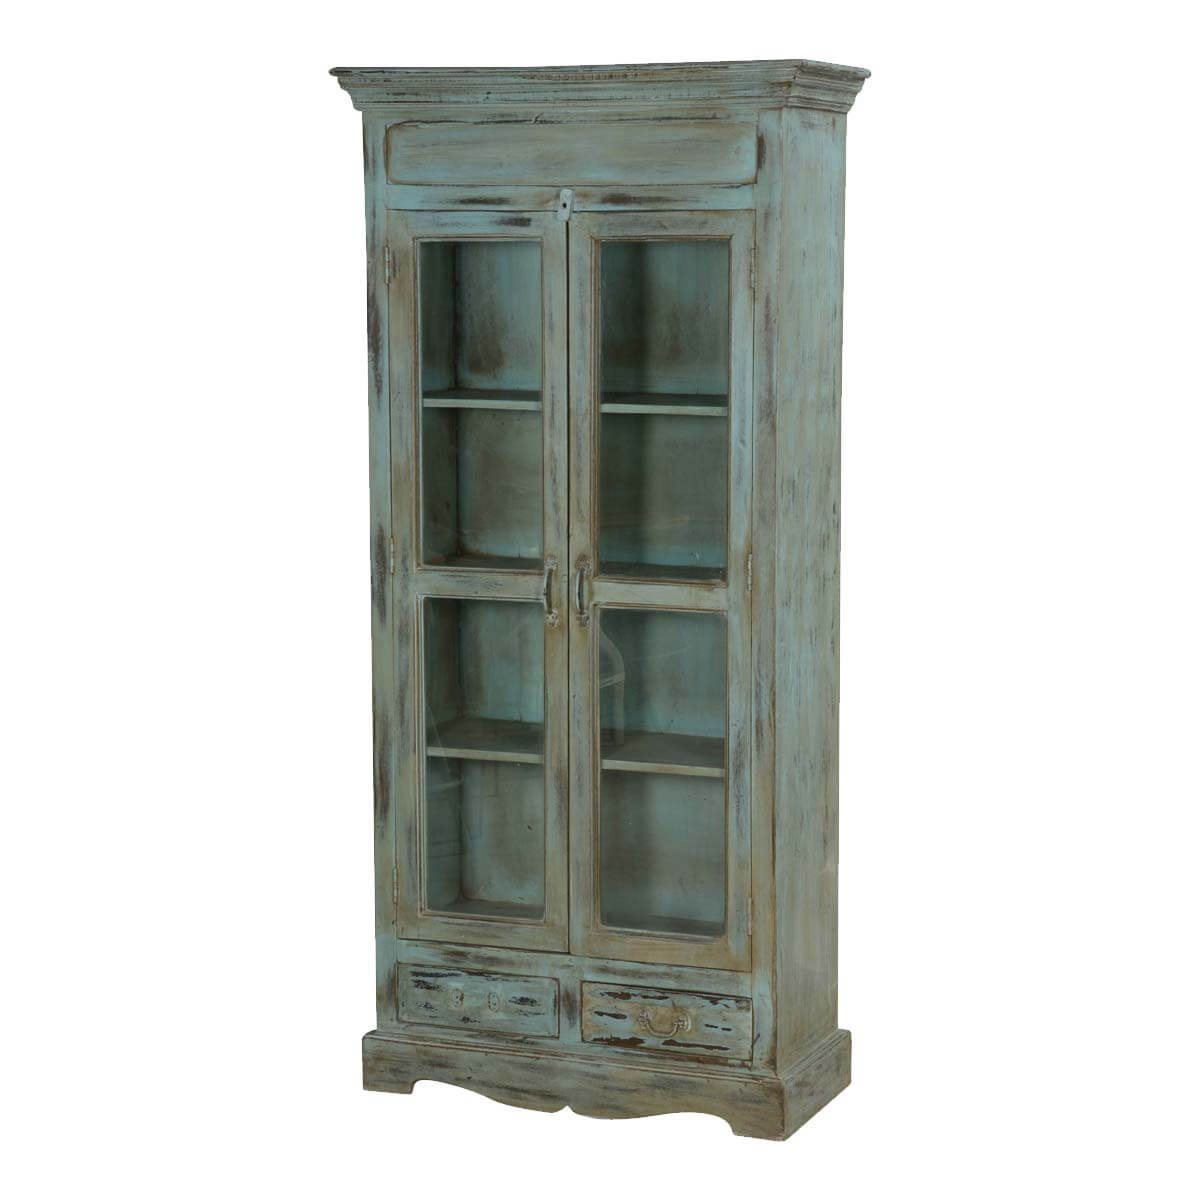 Tiro Blue Distressed Wood 4 Shelf Bookcase With Glass Doors & Drawer